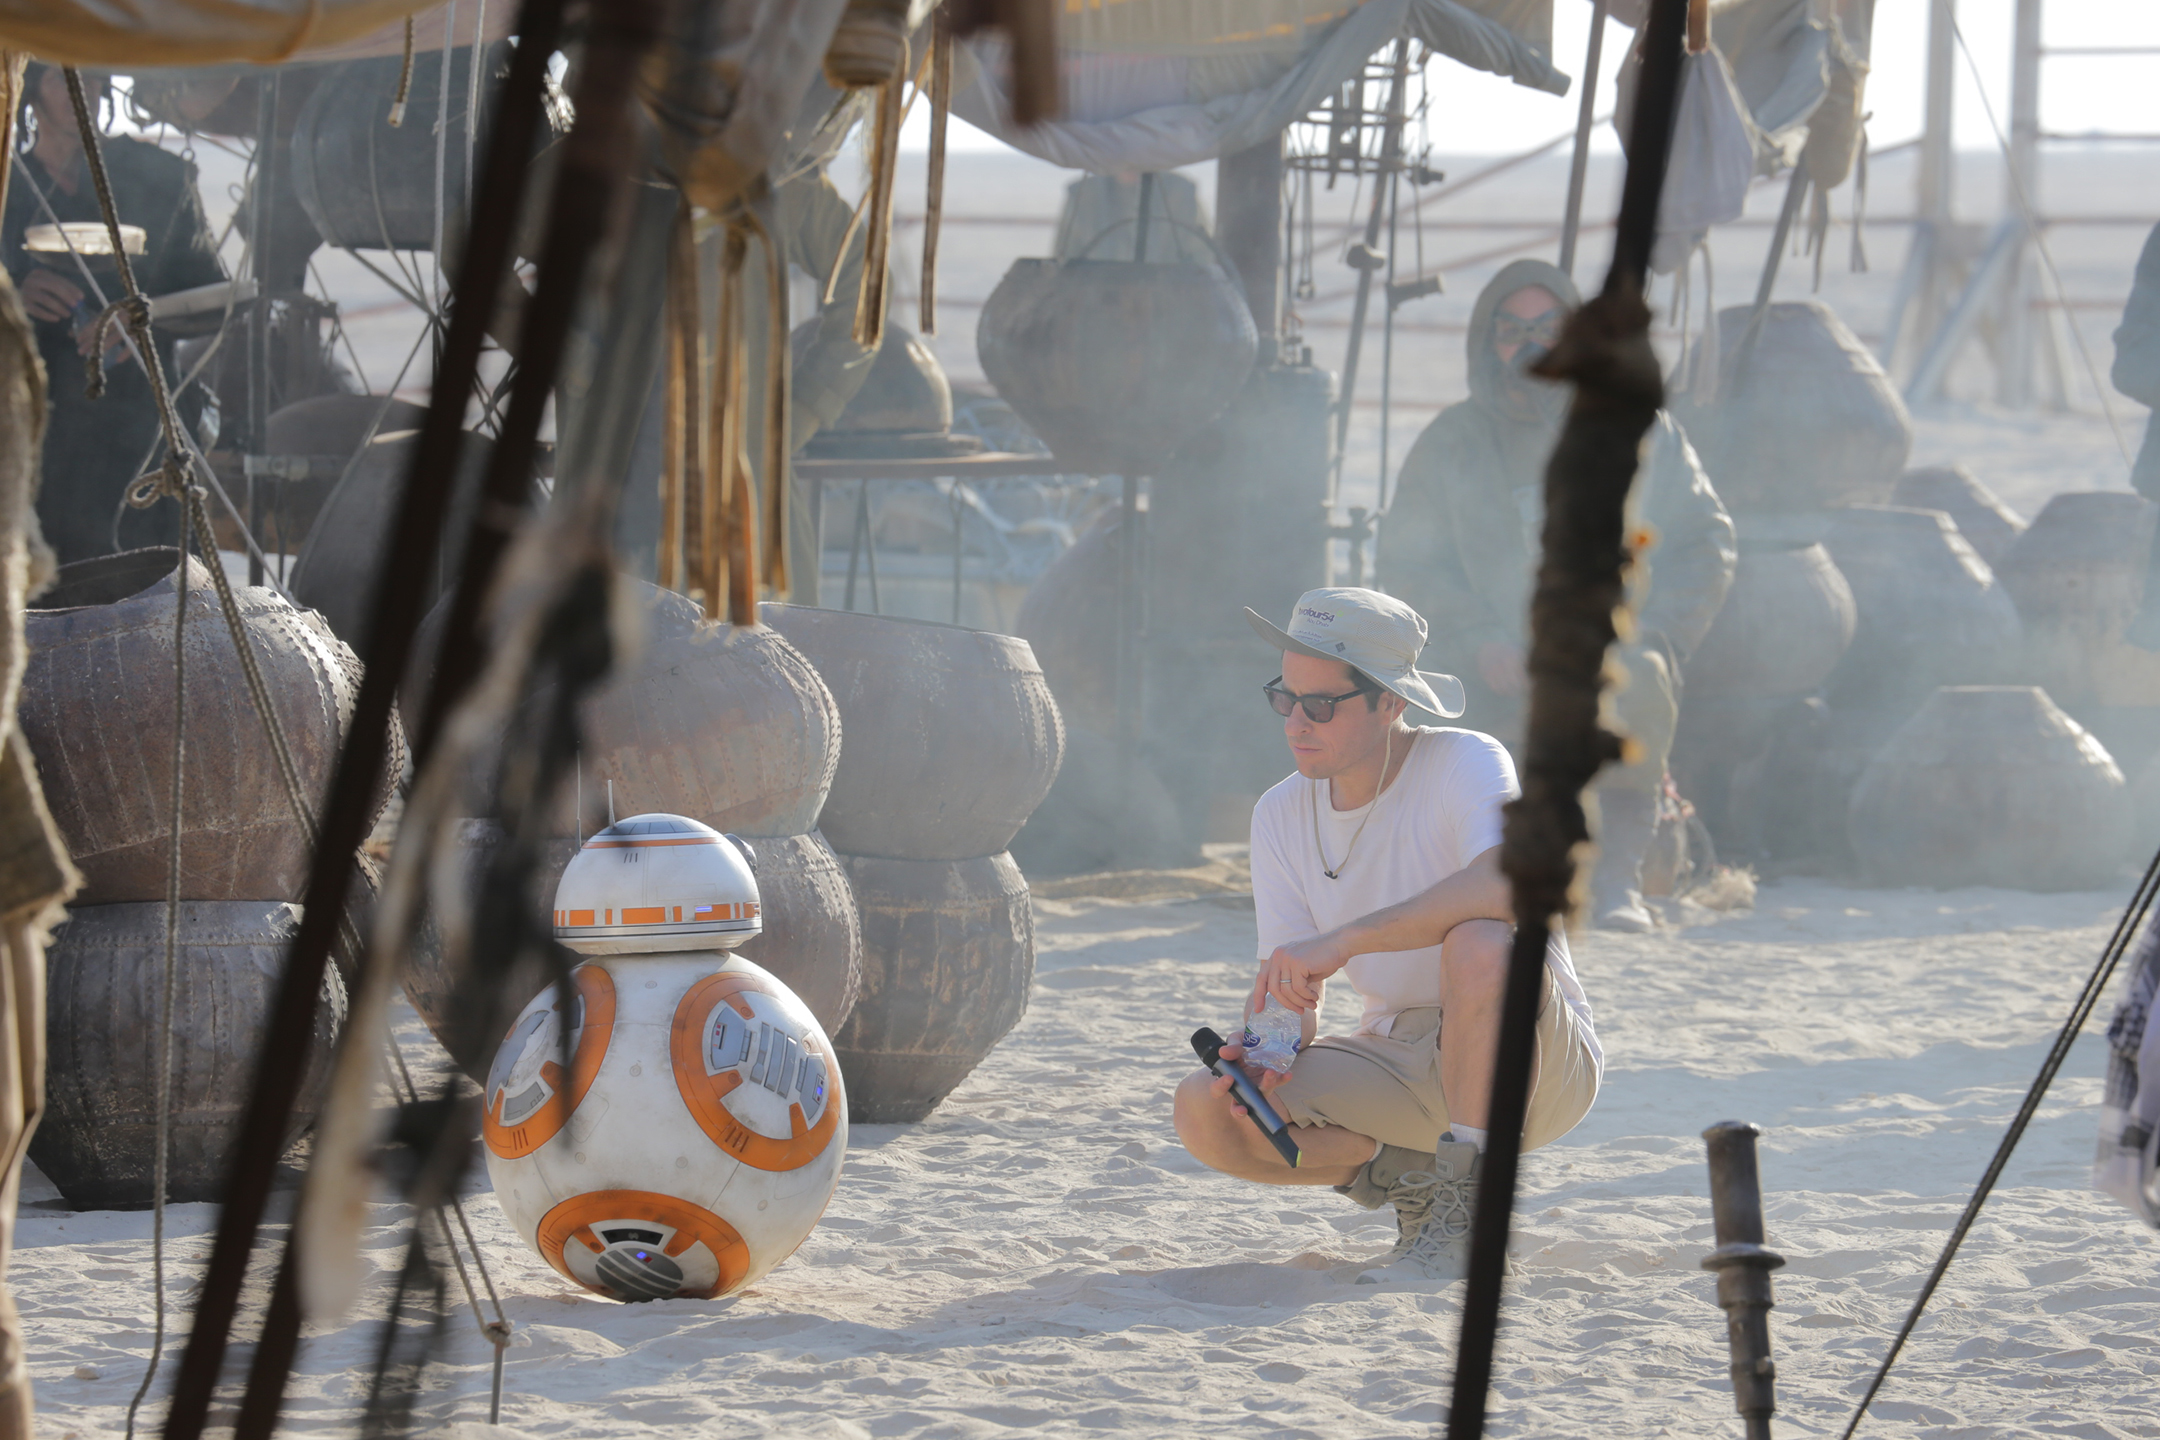 bb-8-9-star-wars-yes